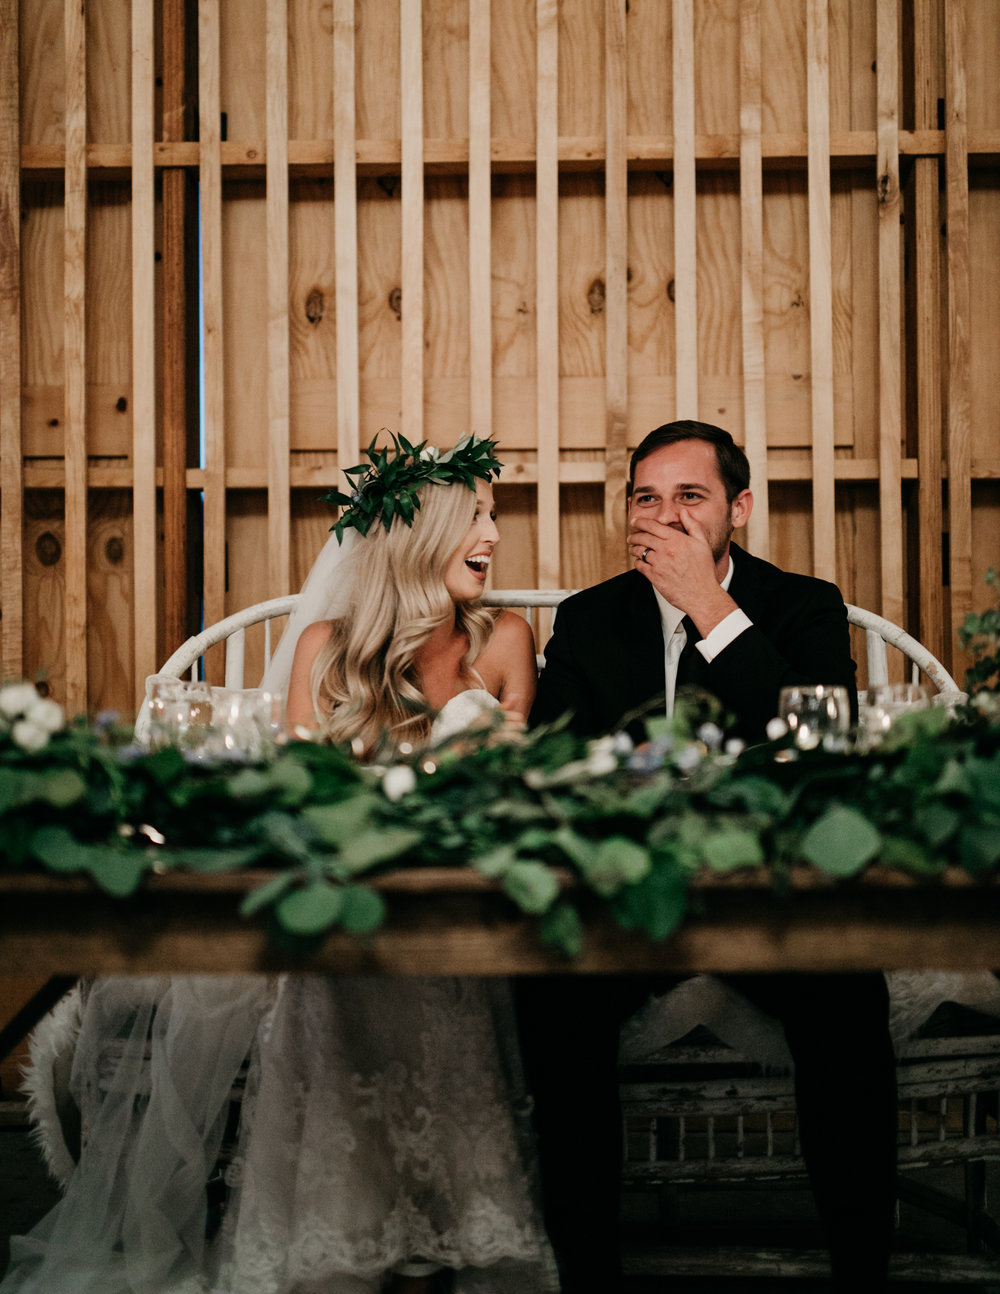 All You Need is Love and Doughnuts!  - with Tremaine Ranch - Arizona Wedding & Event, Vintage, Furniture, Tableware, & Specialty Rentals in Phoenix, Tucson, Flagstaff, Sedona, Tempe, Chandler, Mesa, Gilbert, Prescott, Payson44.jpg